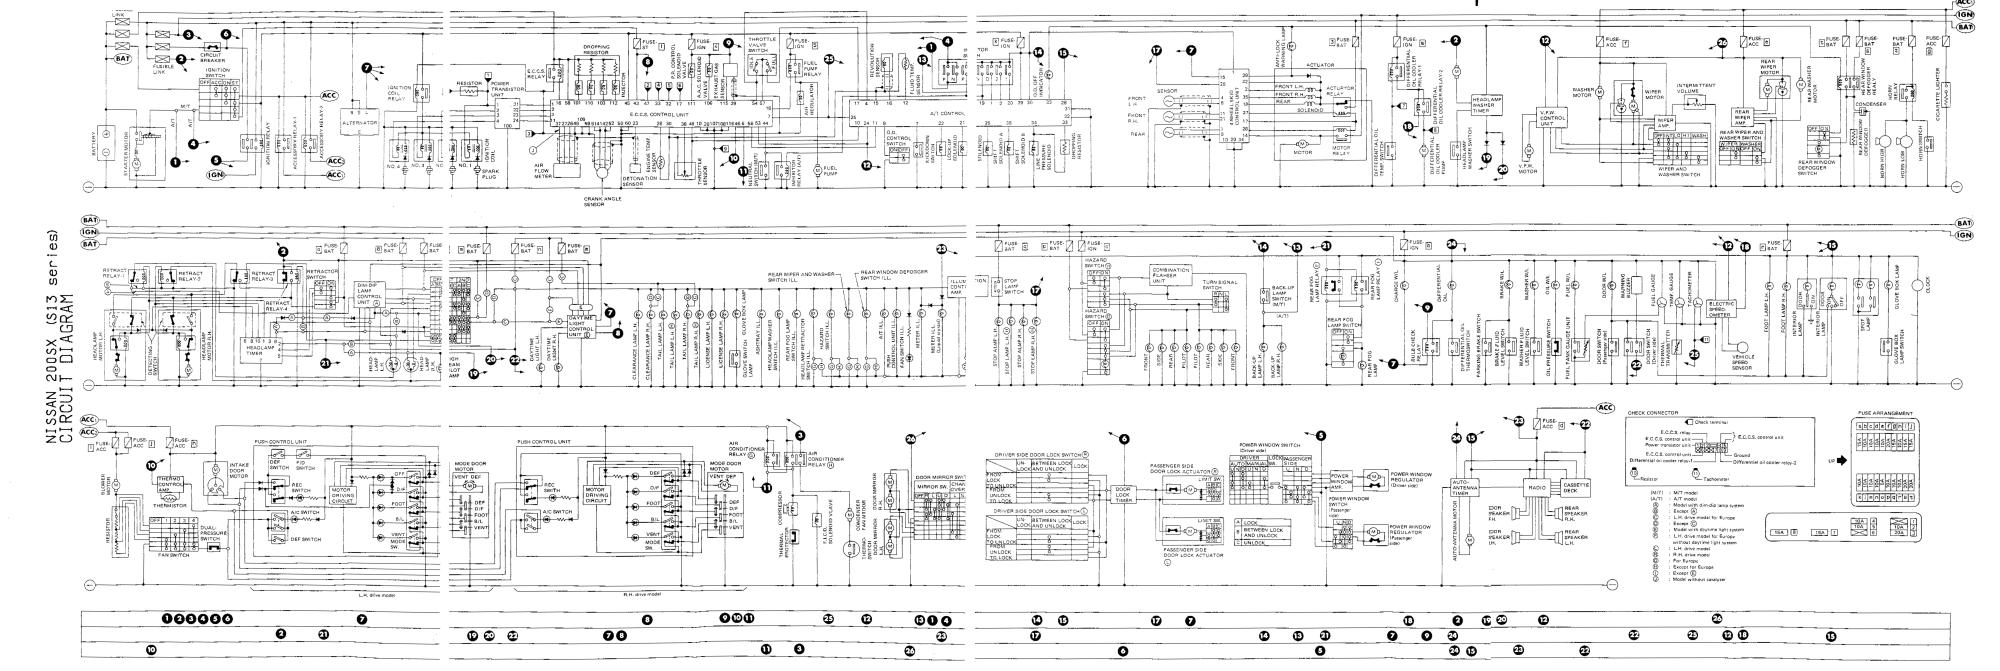 hight resolution of s13 wiring diagrams nissan 240sx radio wiring diagram nissan s13 wiring diagram